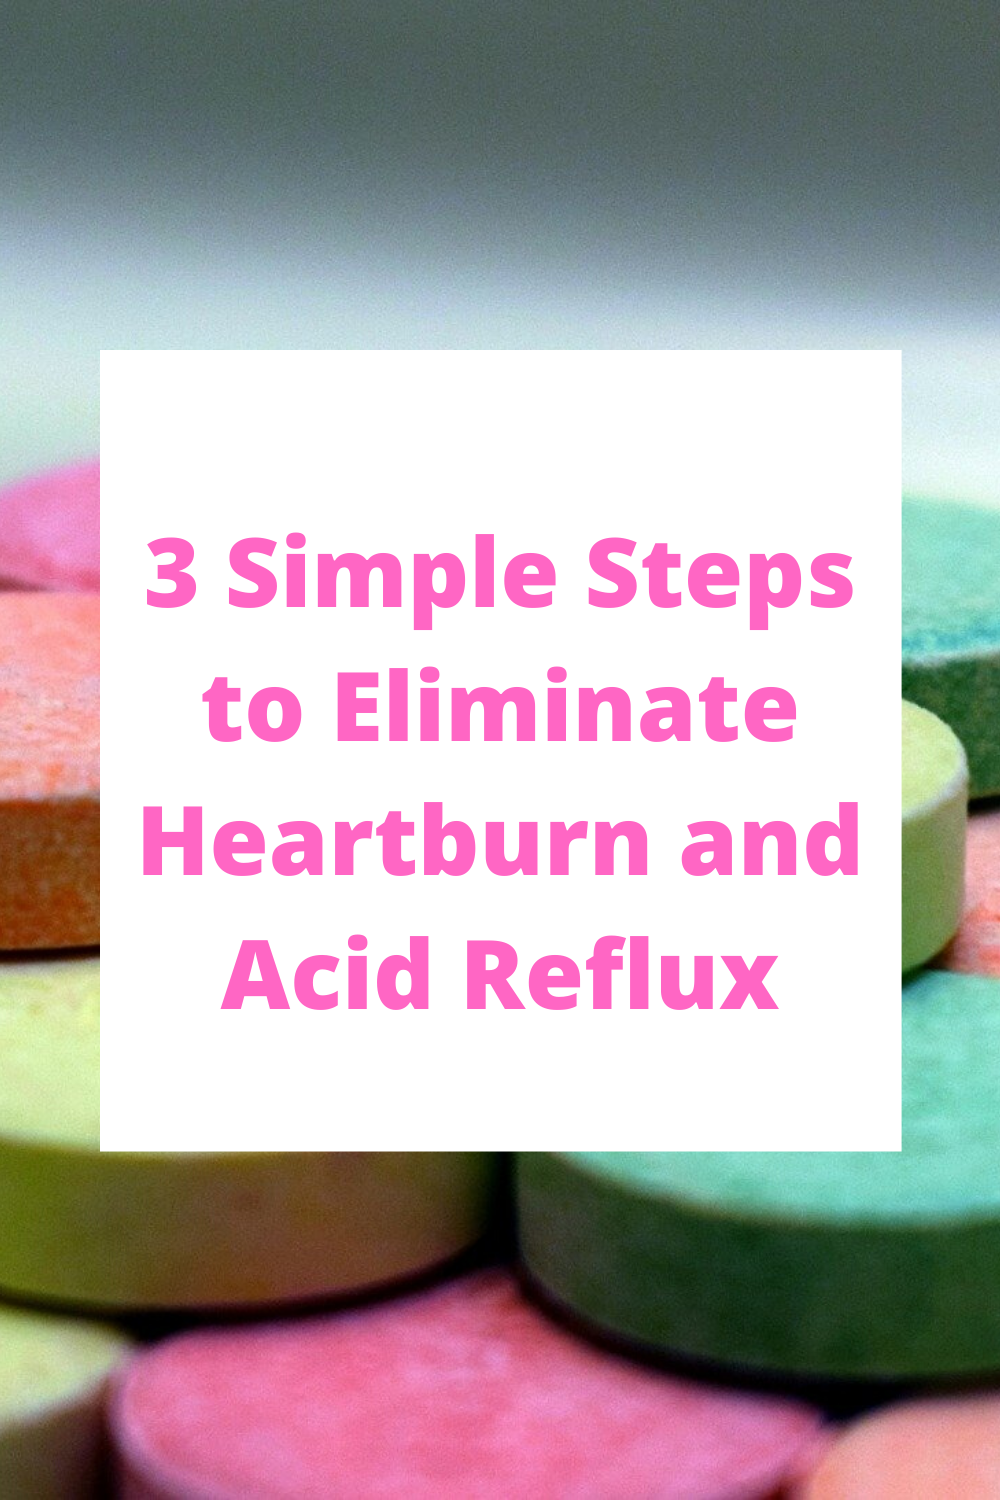 3 tips to eliminate heartburn and acid reflux